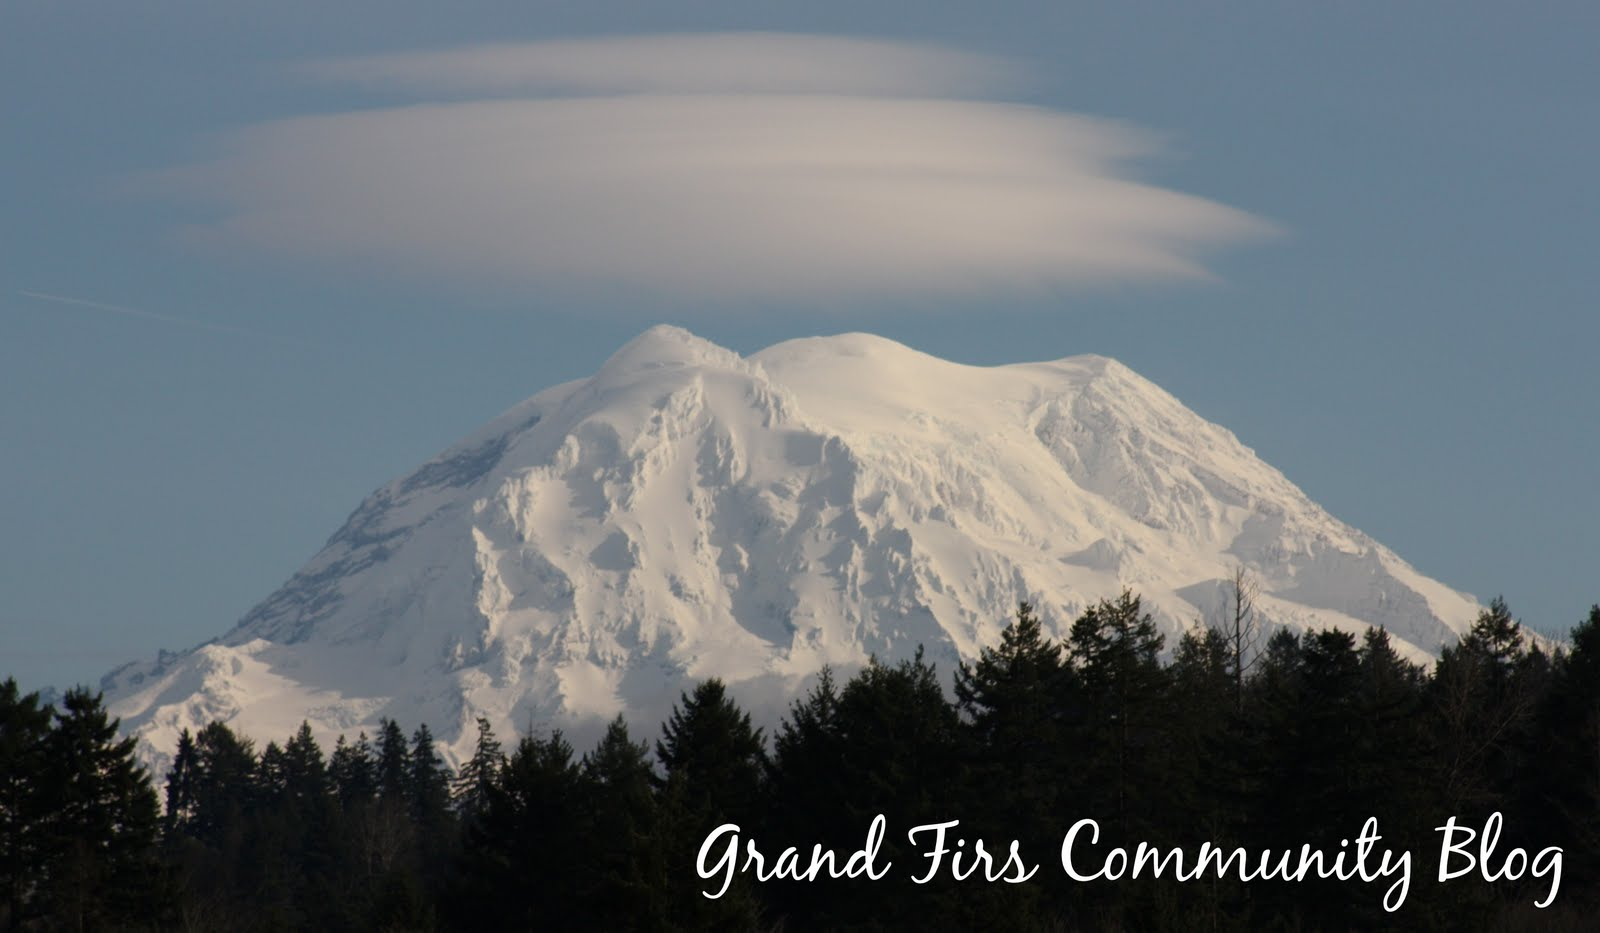 Grand Firs Community